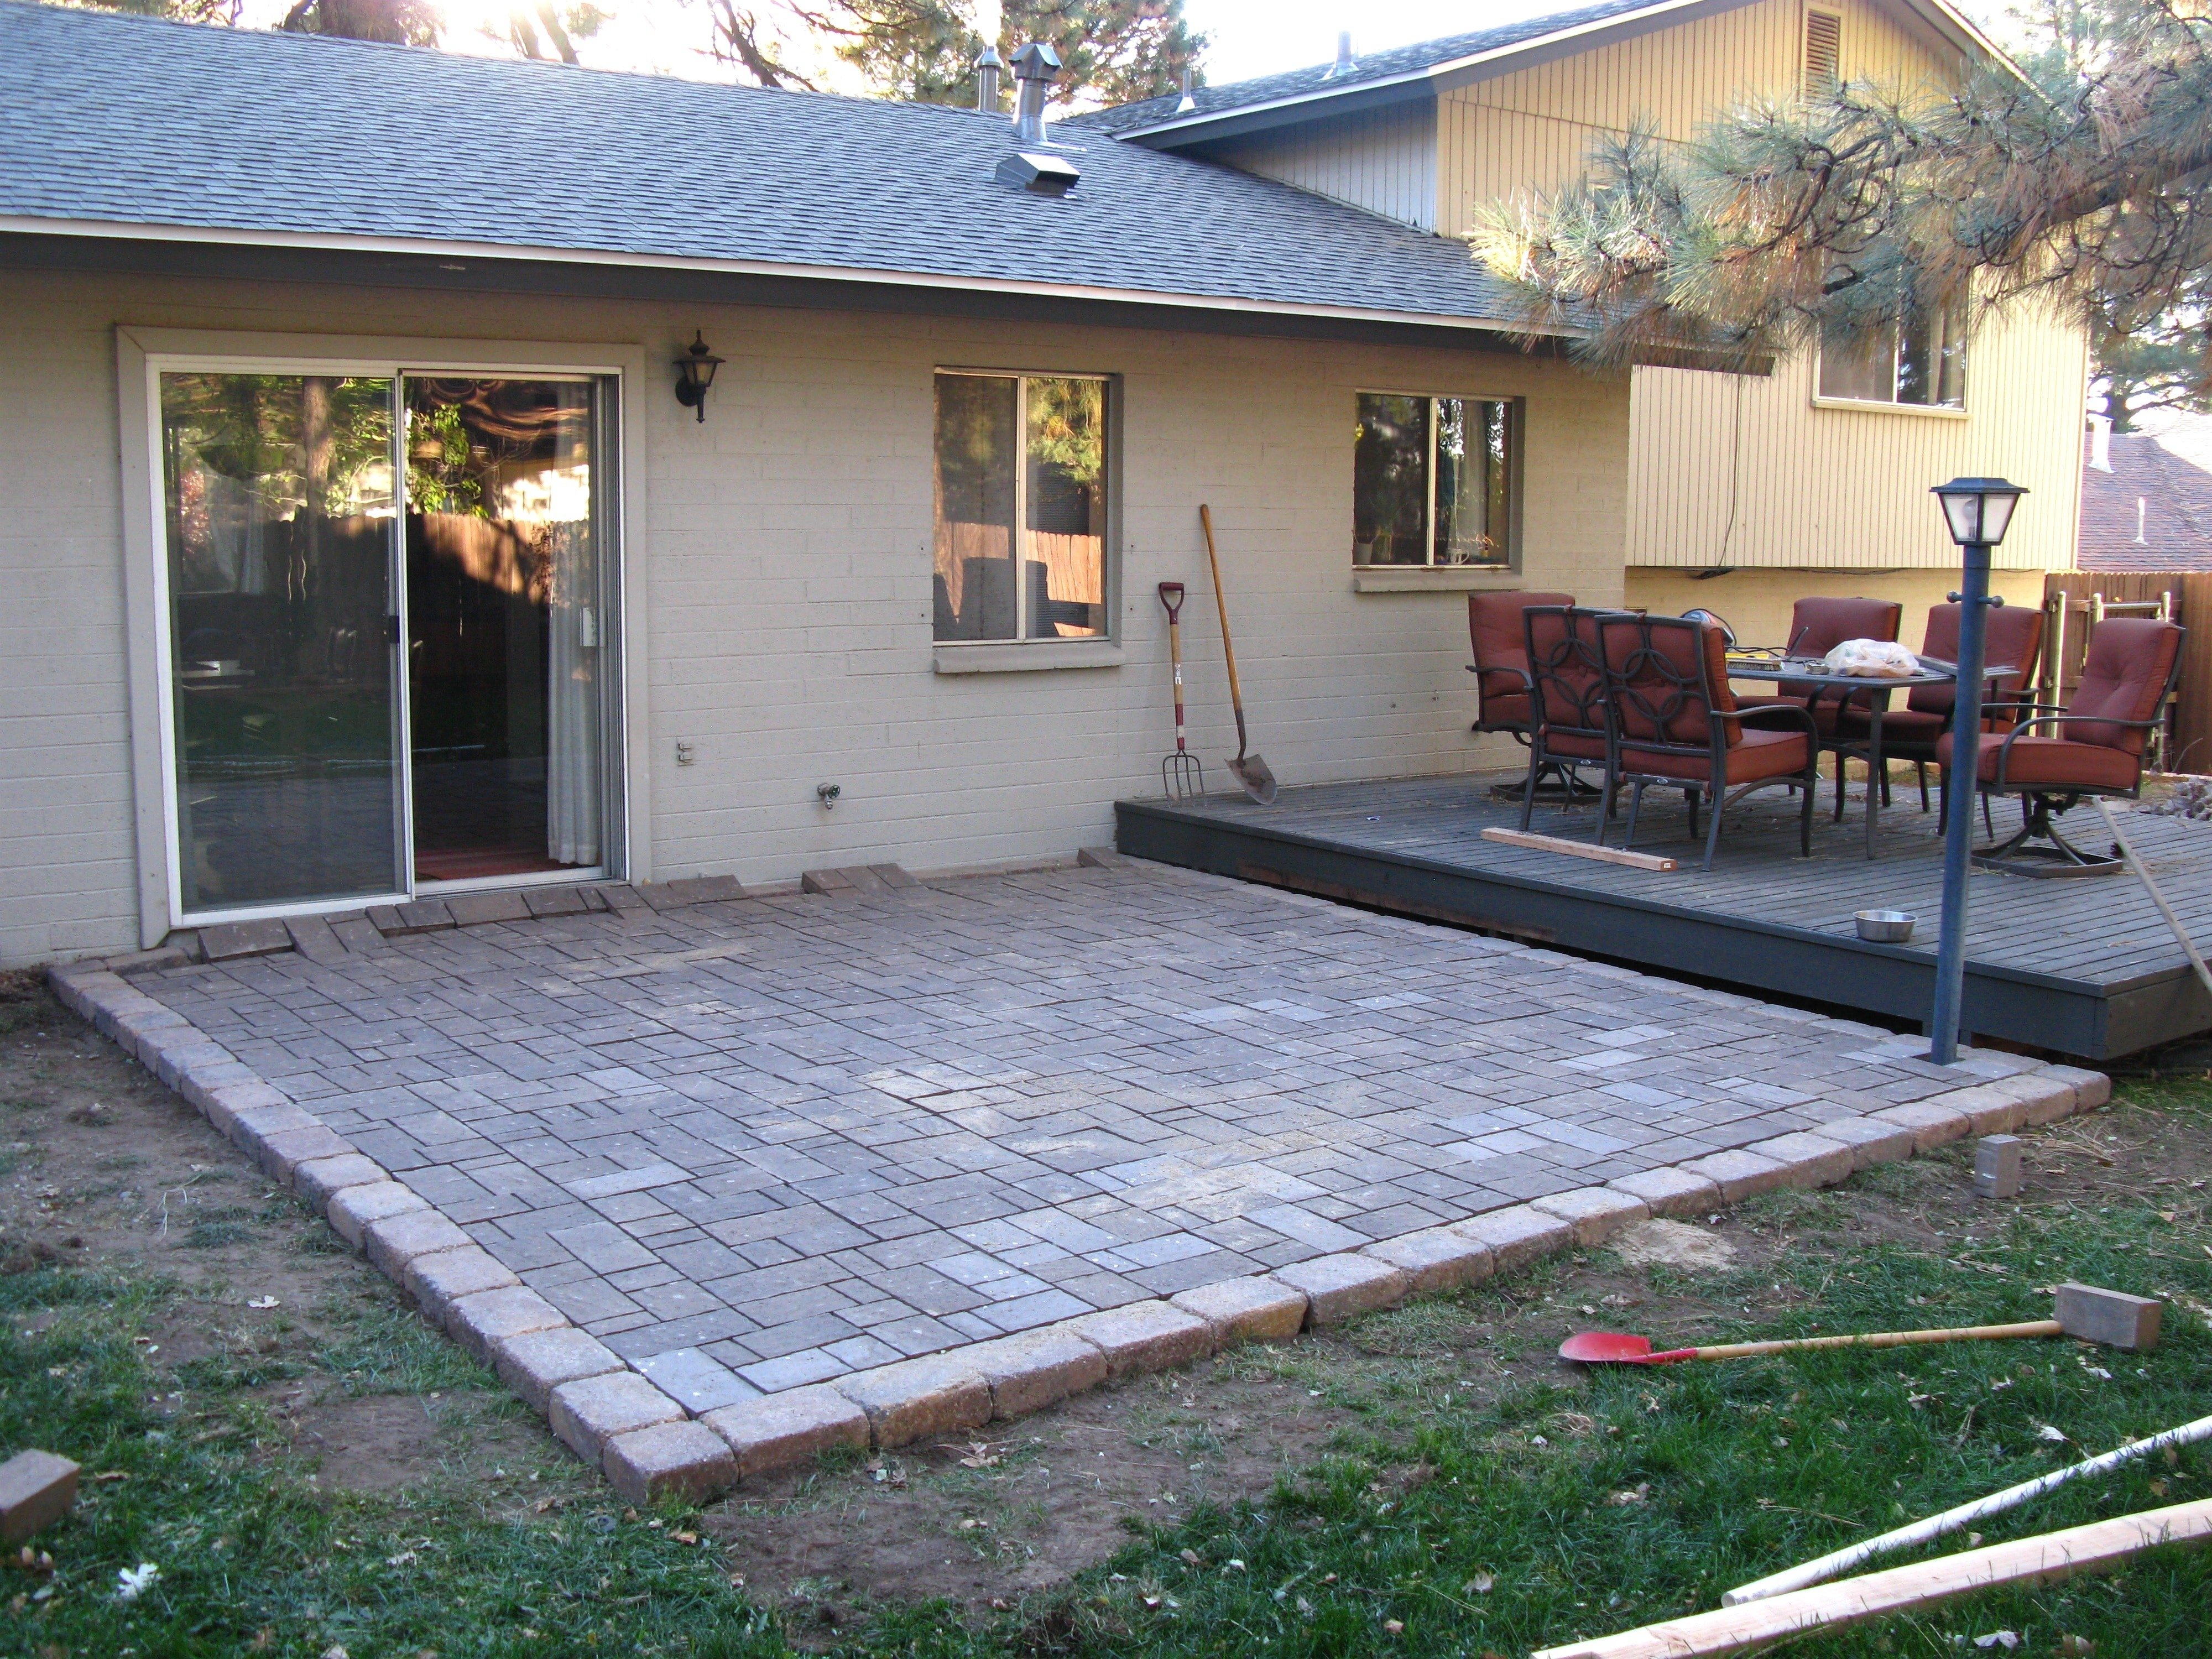 10 Ideal Do It Yourself Patio Ideas lovely do it yourself paver patio patio design ideas 2020